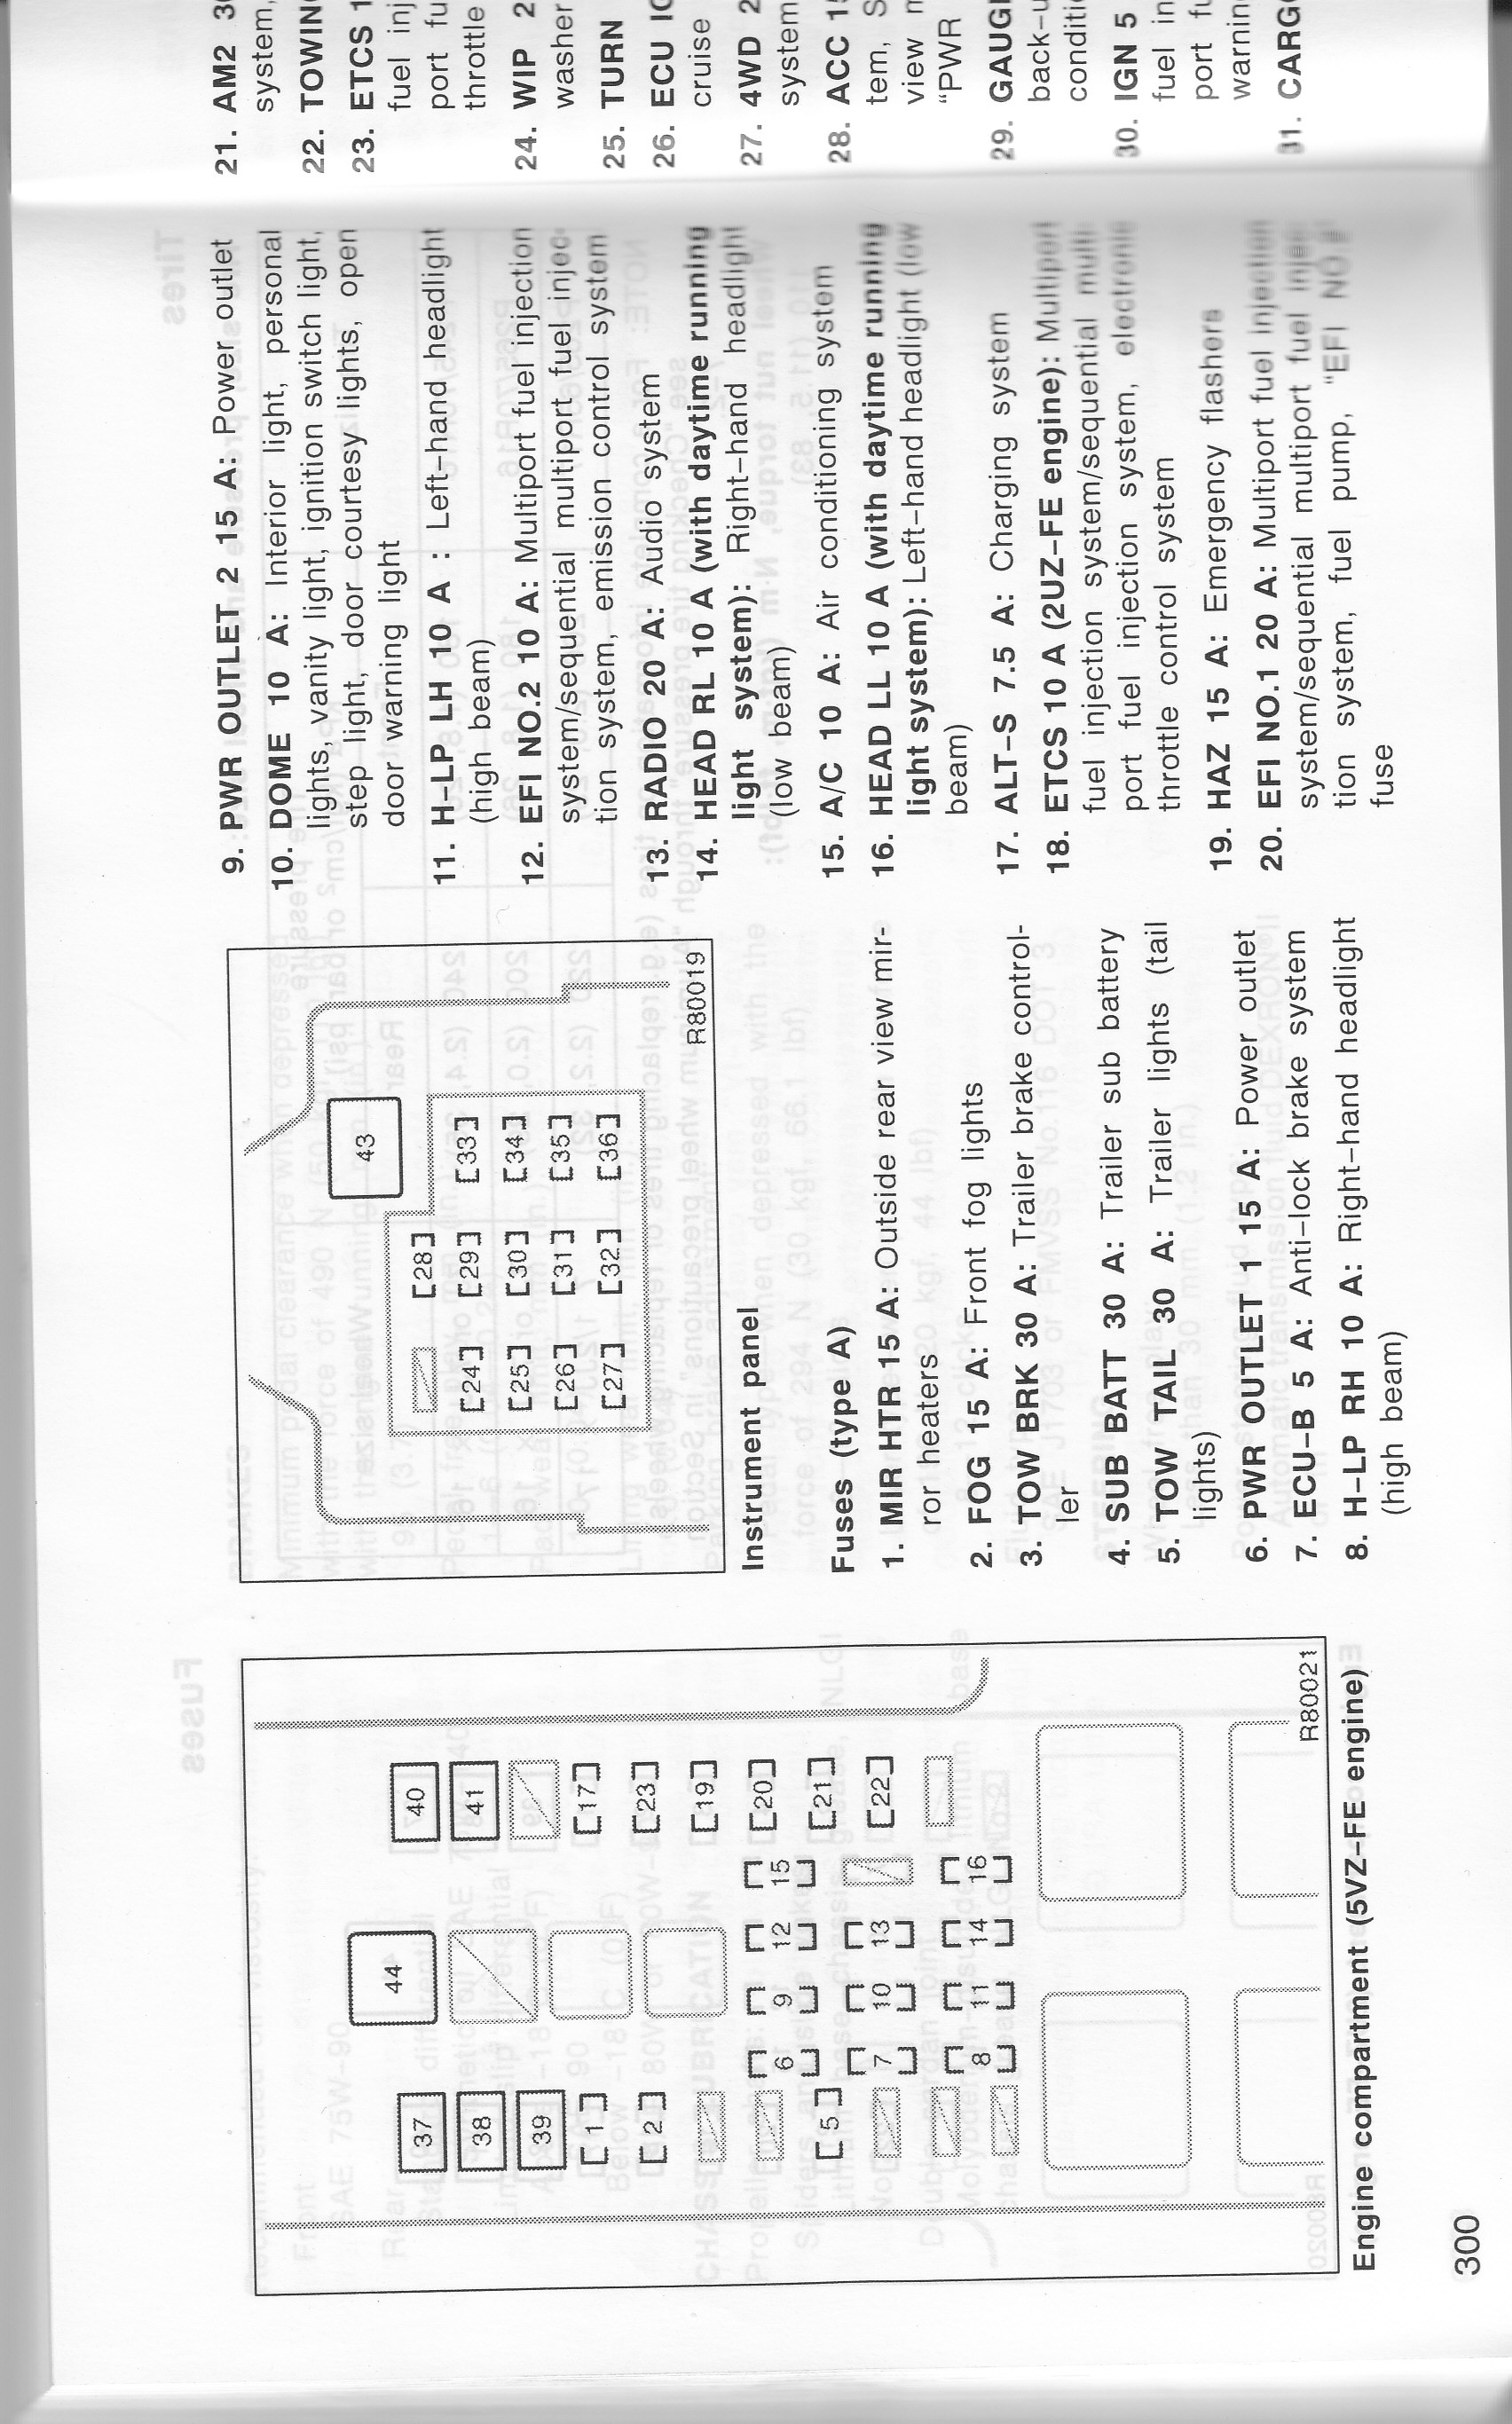 2010 Tundra Fuse Diagram Schematic Diagrams 2003 Box Product Wiring U2022 2007 Toyota Radio